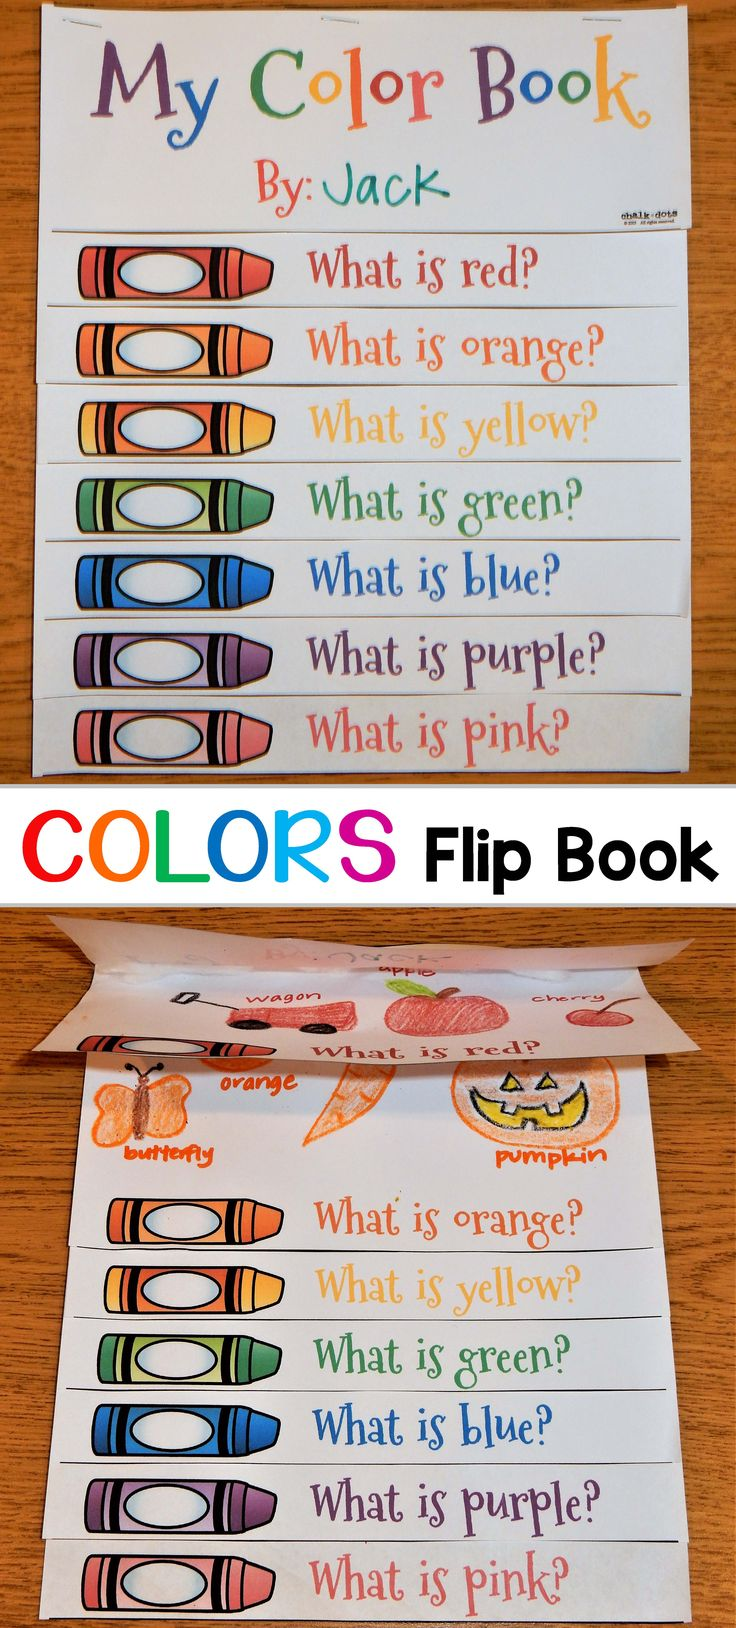 This fun color flip book is included in a crayon thematic unit that is fun to use any time during the year! It contains a variety of creative color activities that encompass many areas of the curriculum, such as reading, writing, math, and art!